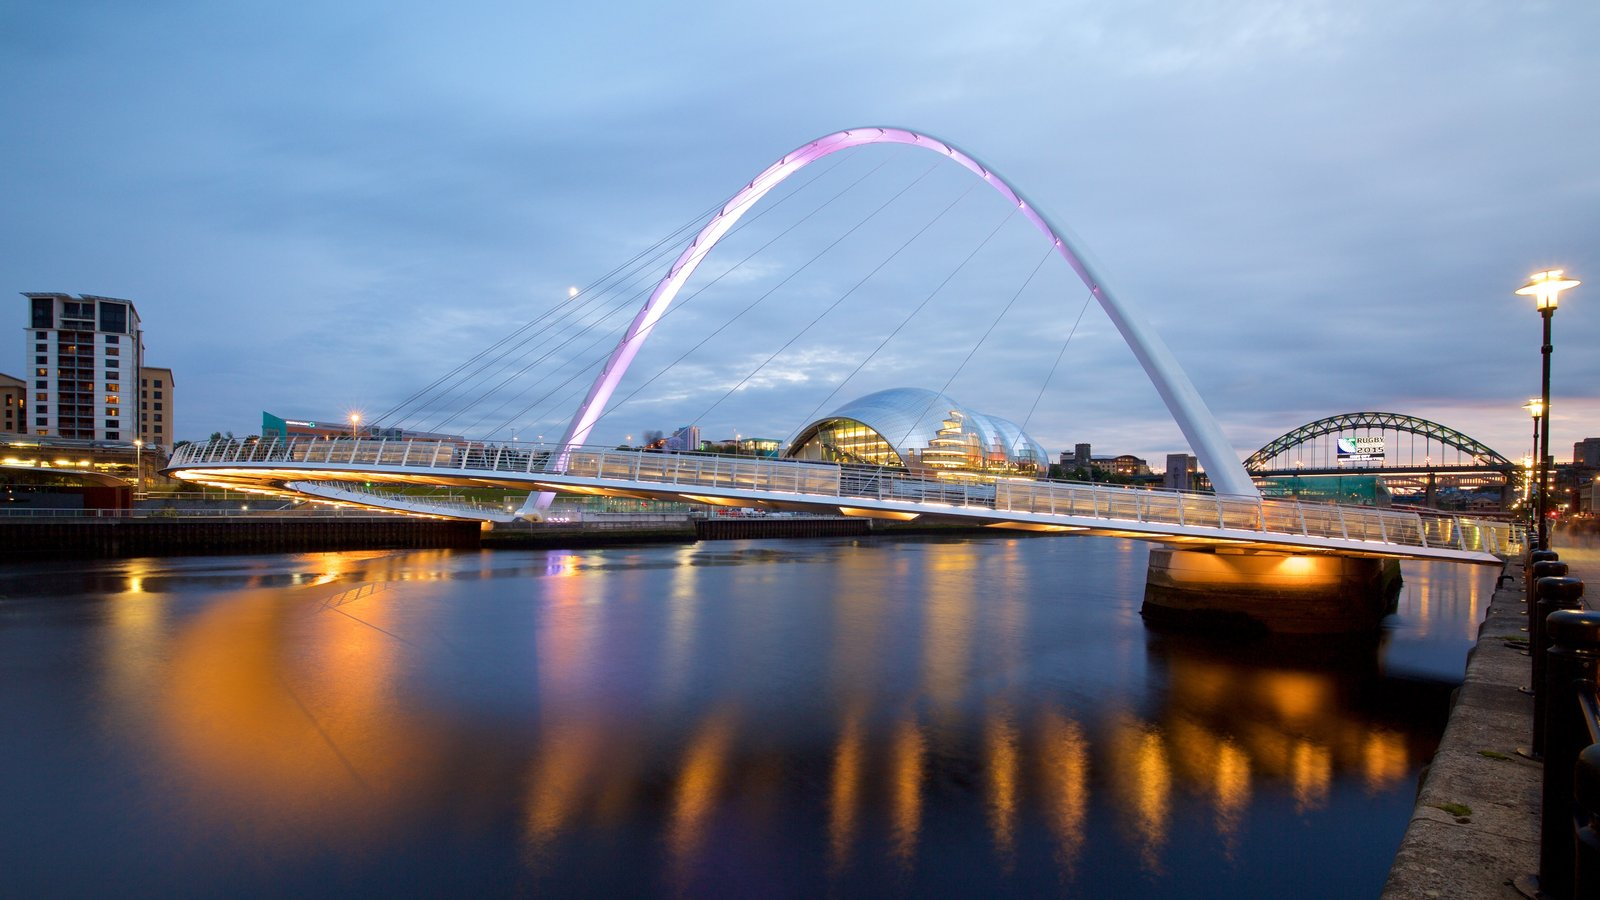 Newcastle: Newcastle-upon-Tyne Pictures: View Photos & Images Of